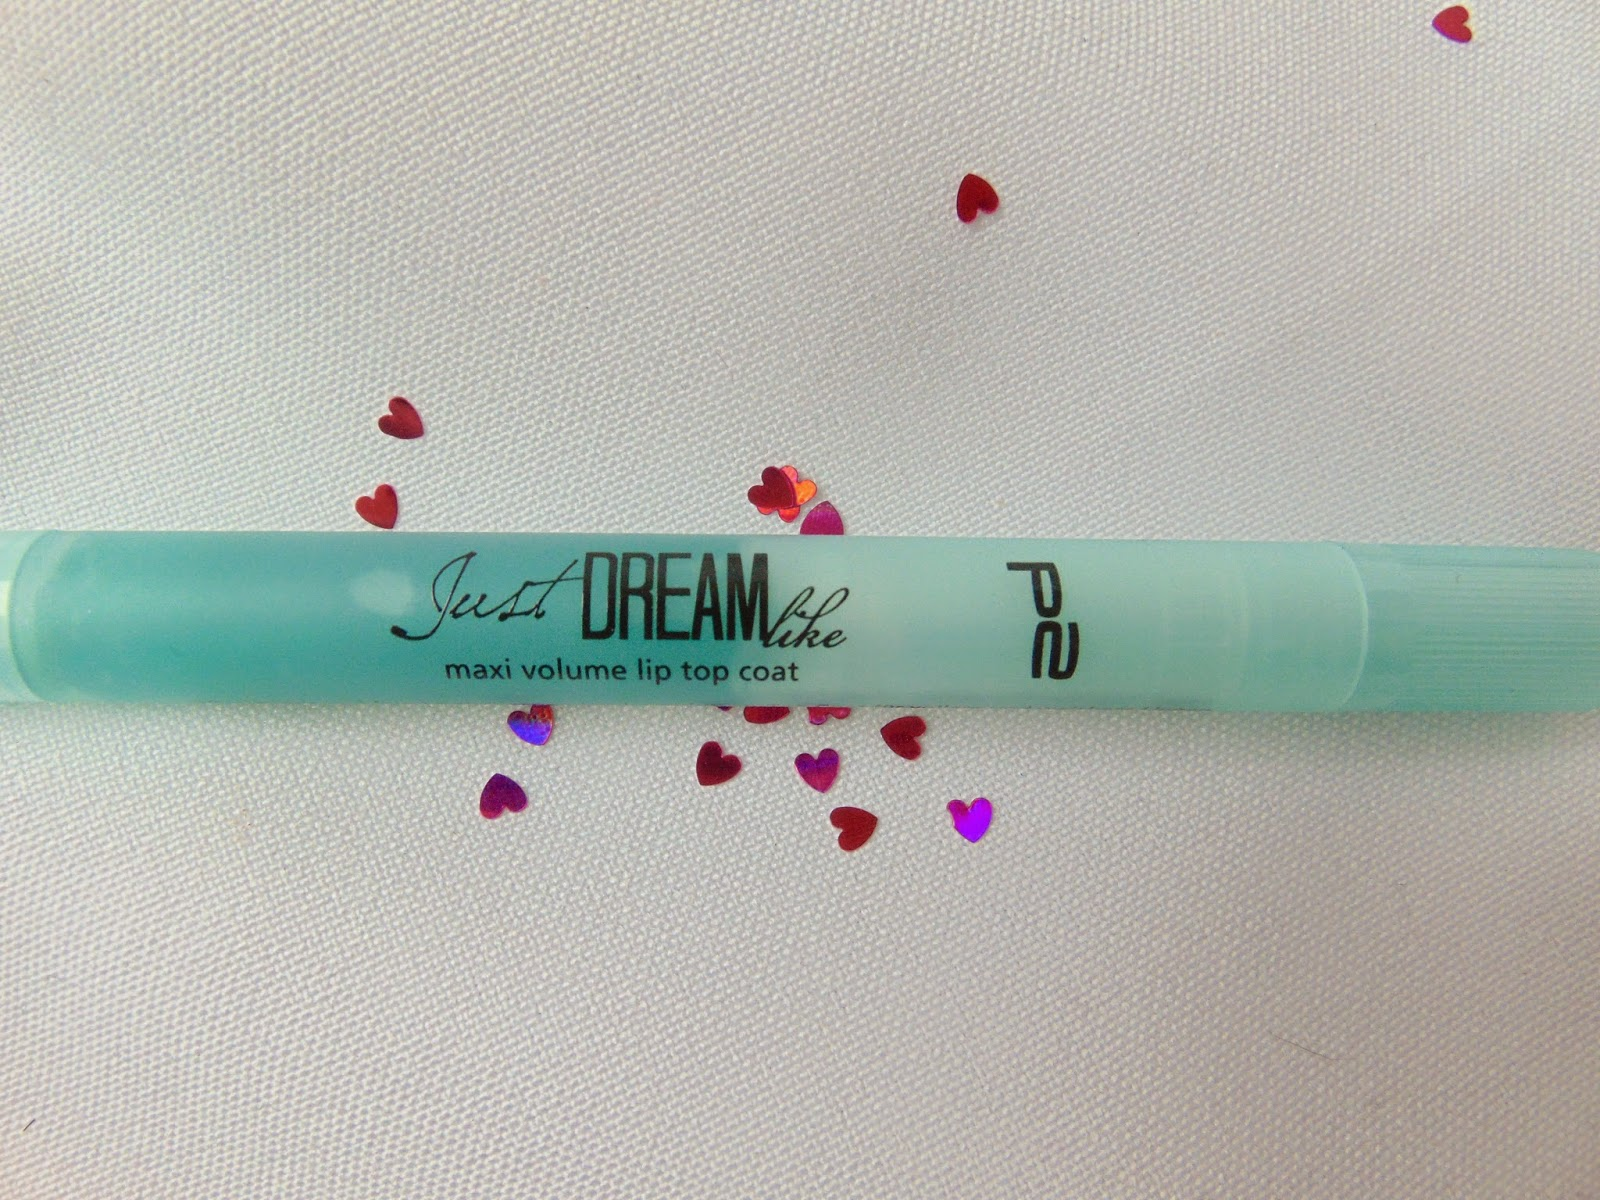 p2 Limited Edition: Just dream like - maxi volume lip top coat - www.annitschkasblog.de